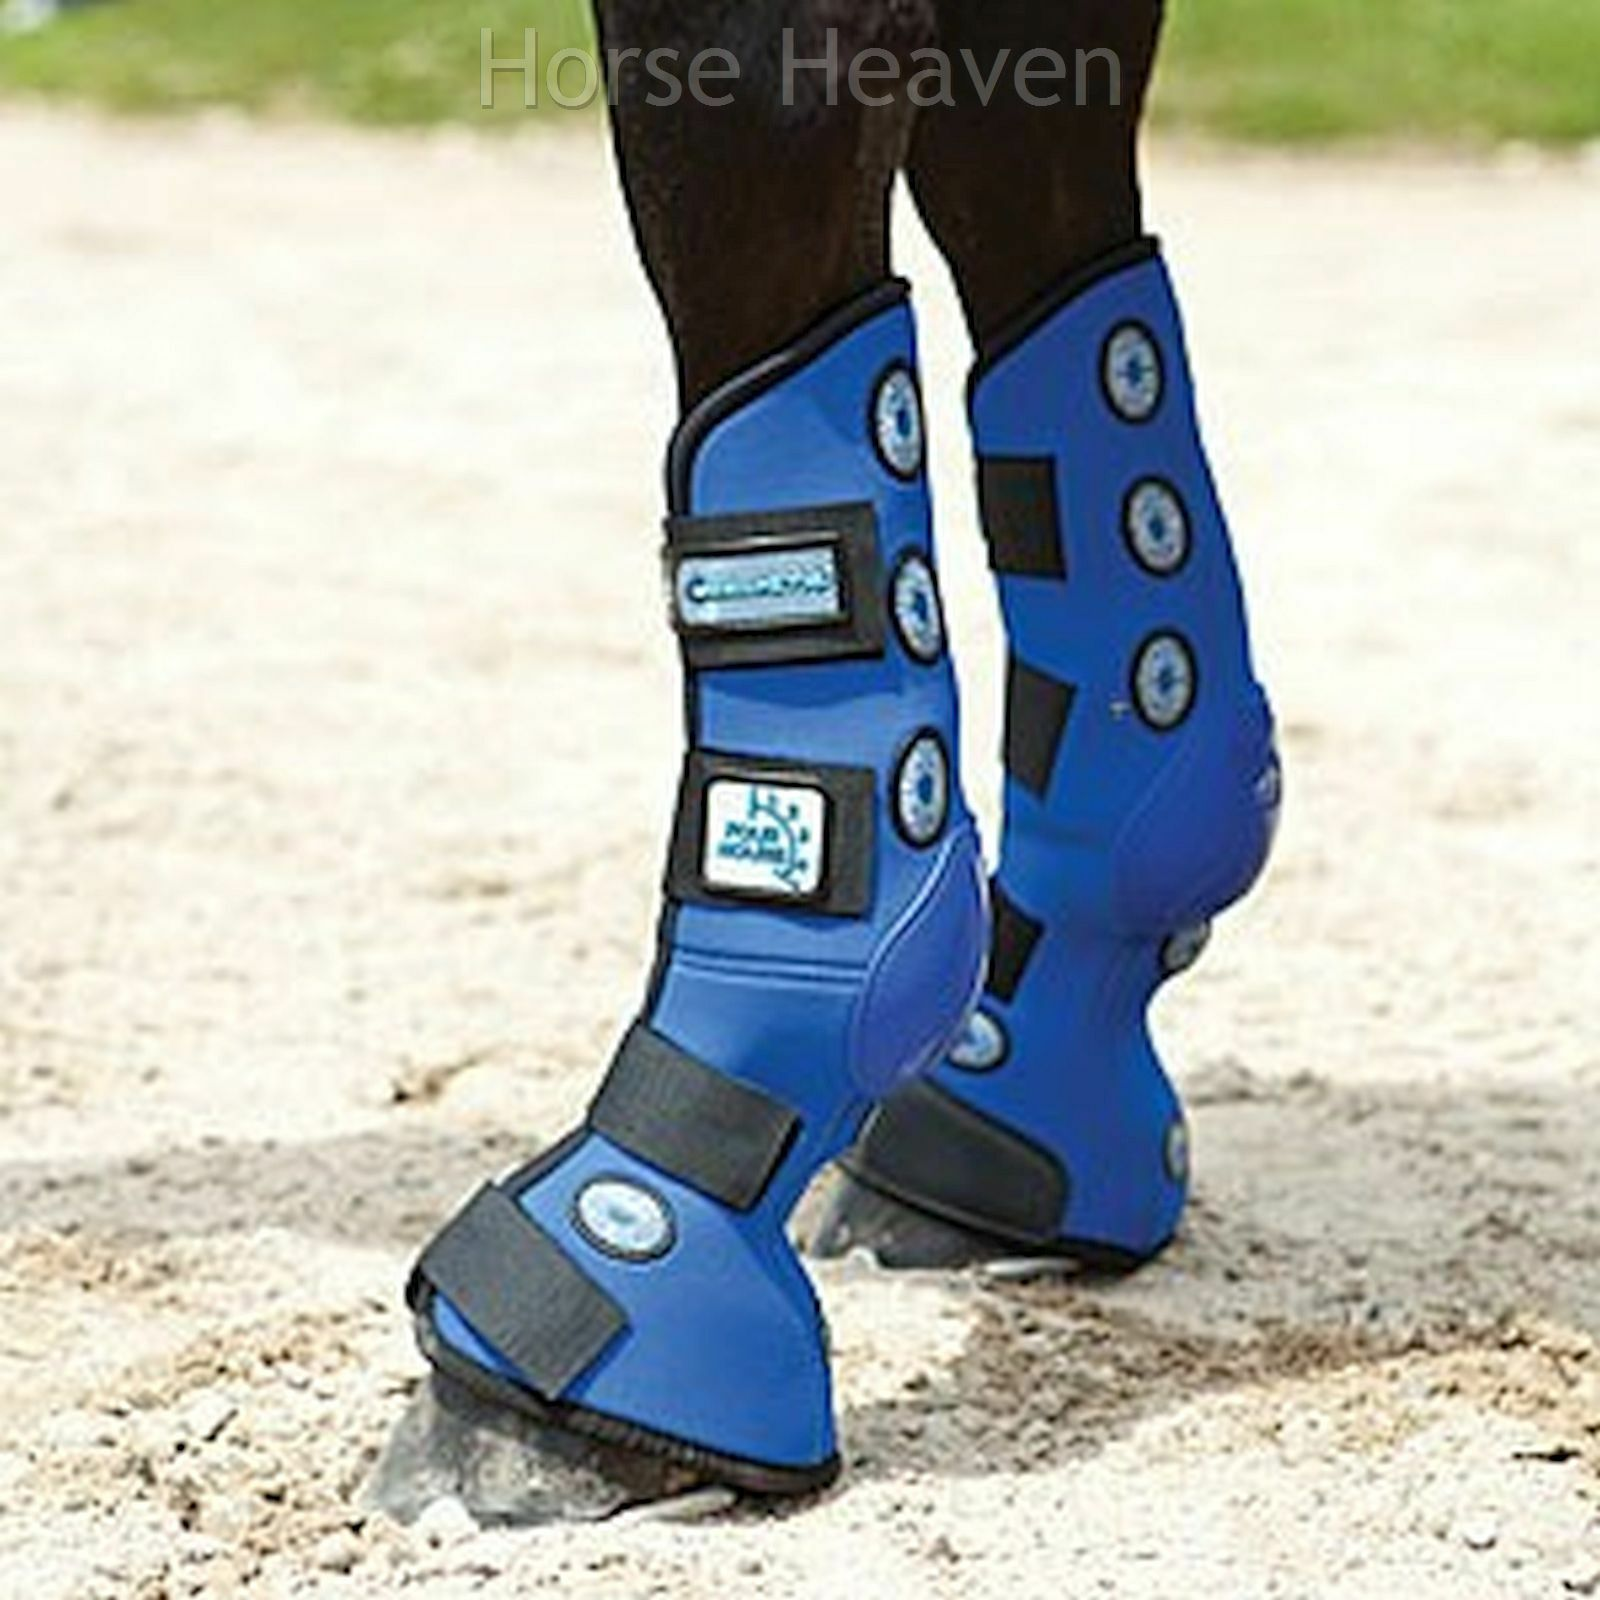 VEROTUS 4 HOUR Intensive Magnetic Therapy Stiefel FRONT, FREE NEXT-DAY DELIVERY